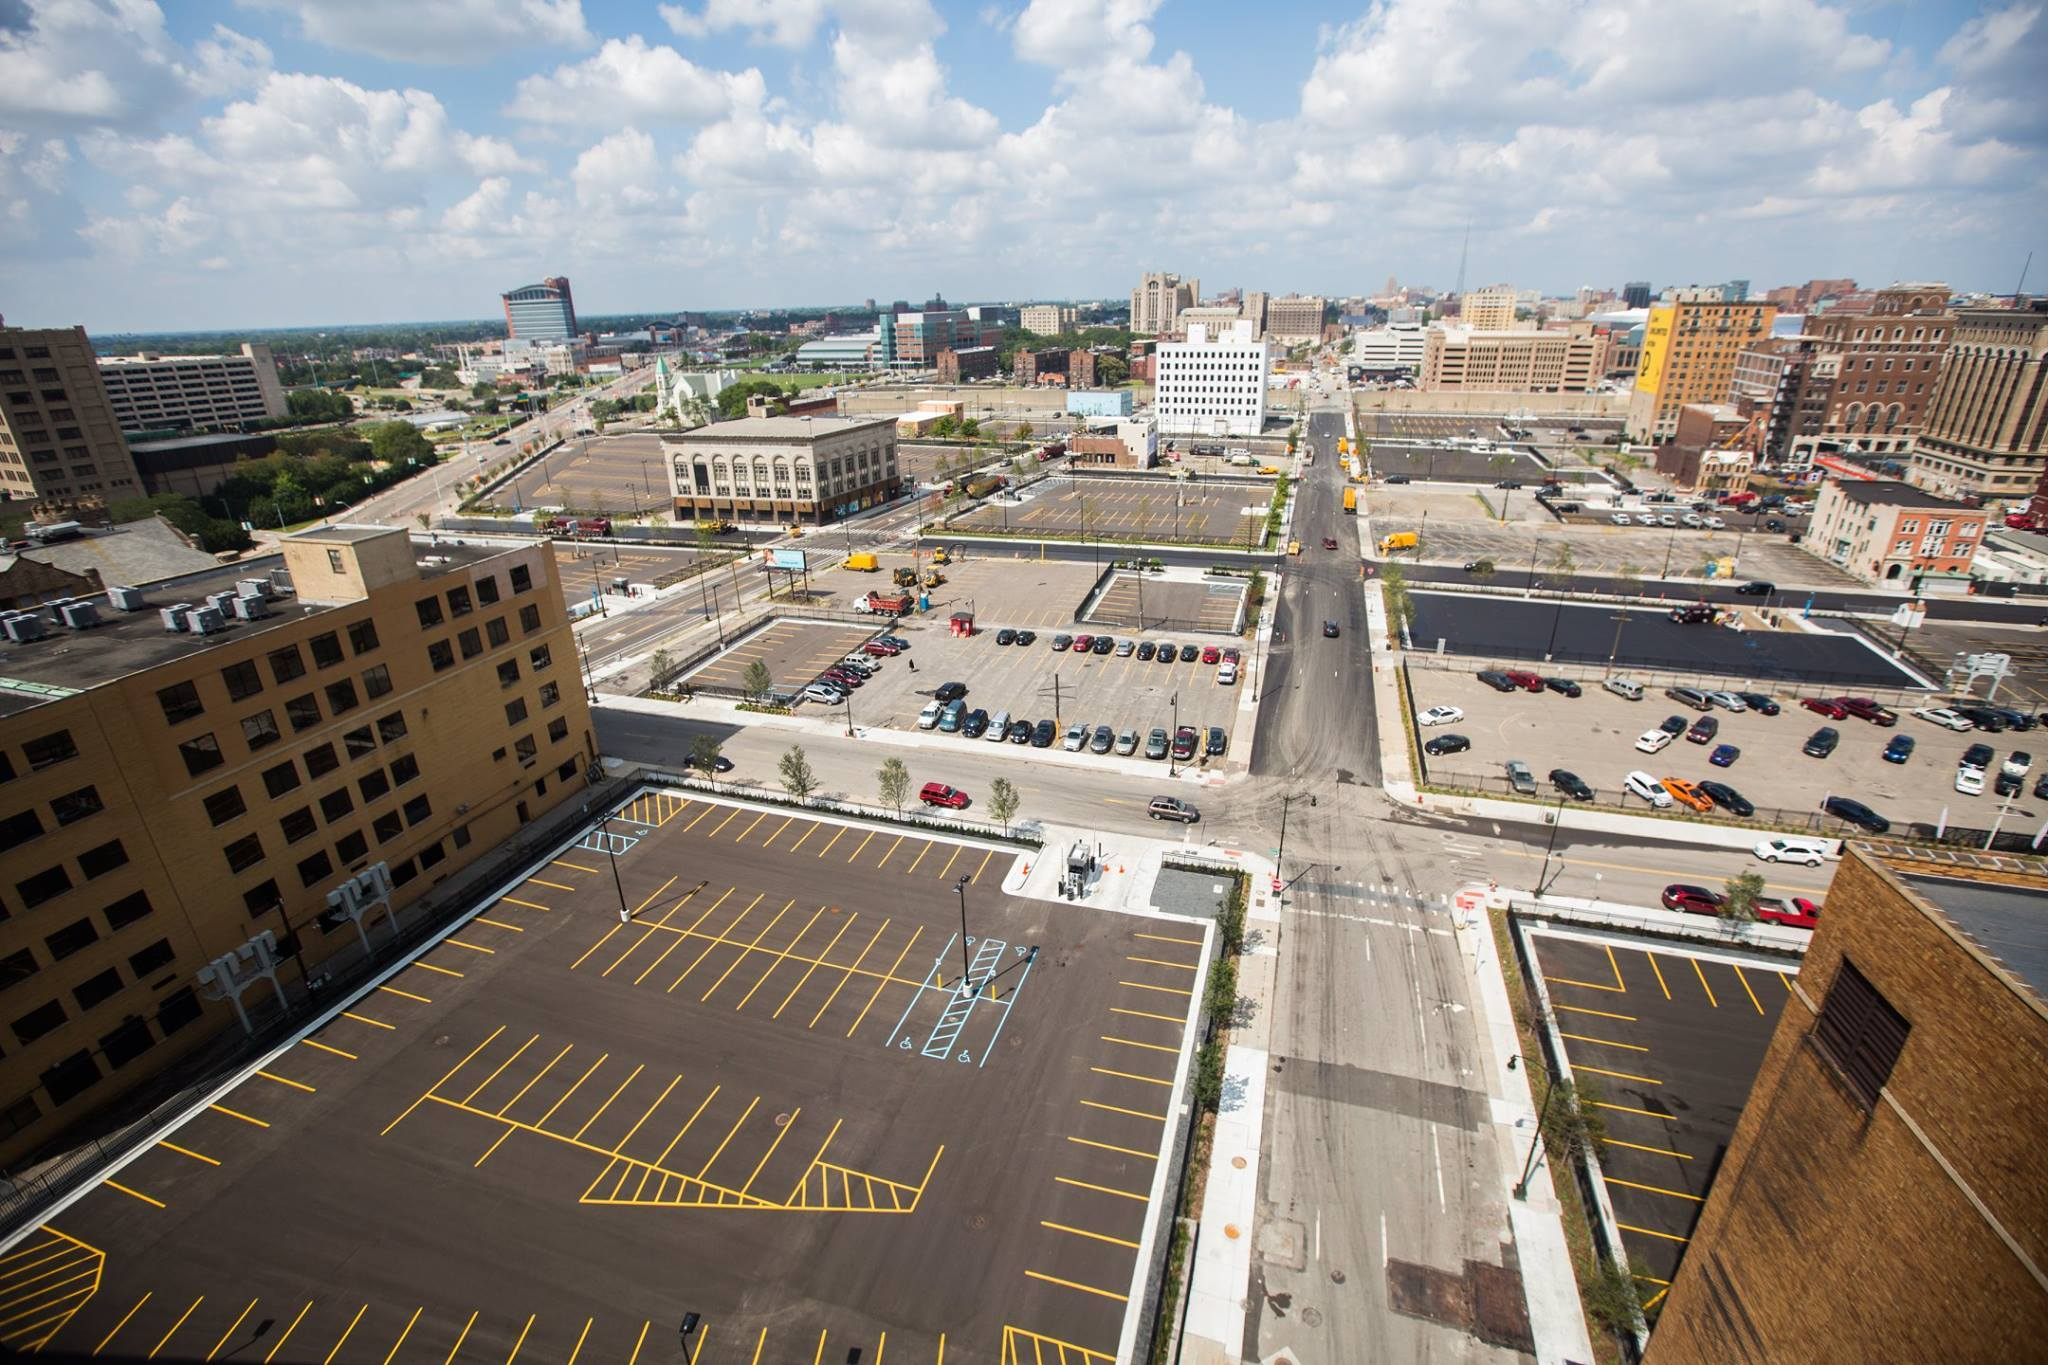 Downtown Detroit surface parking lots